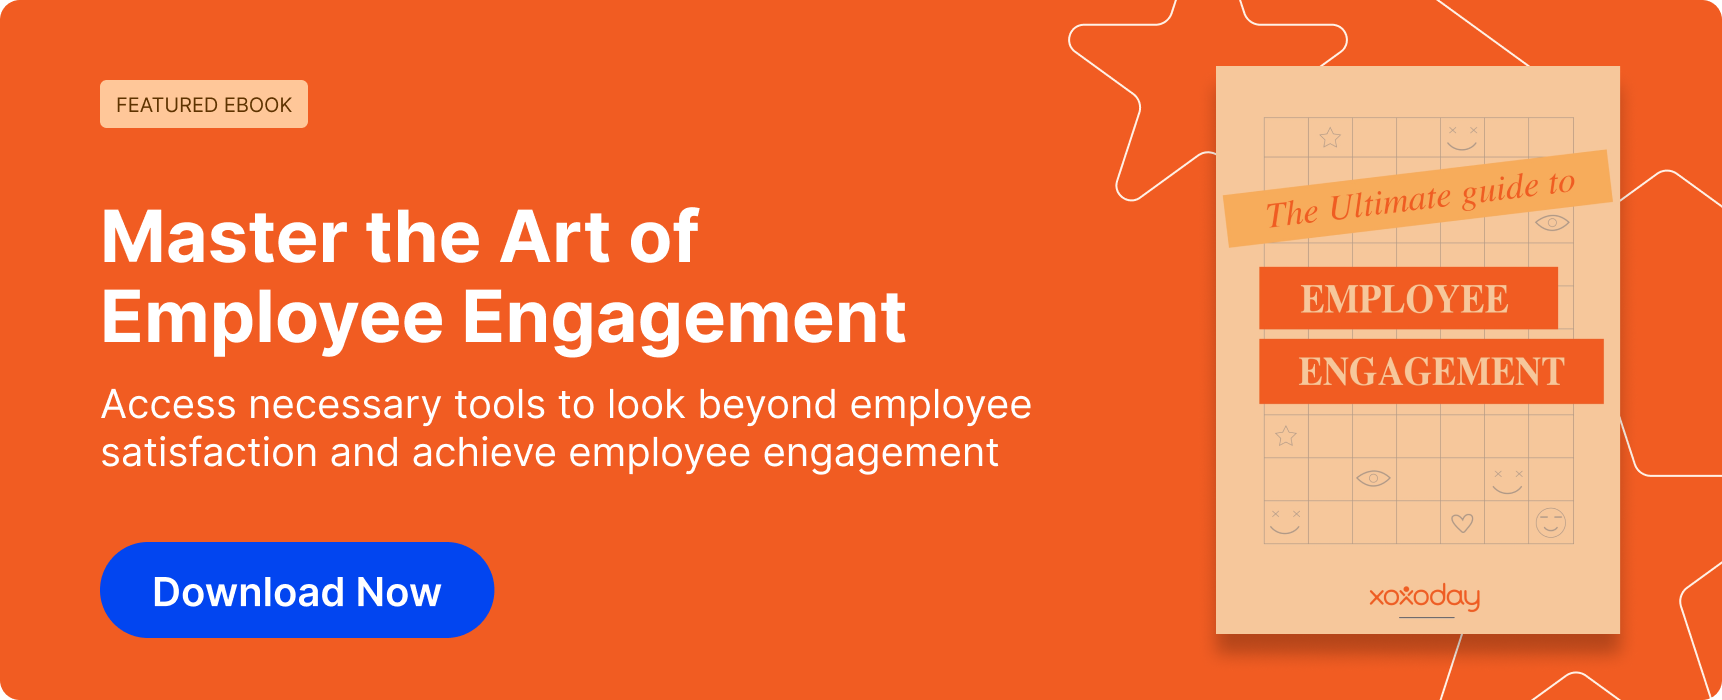 The Ultimate Guide to Employee Engagement